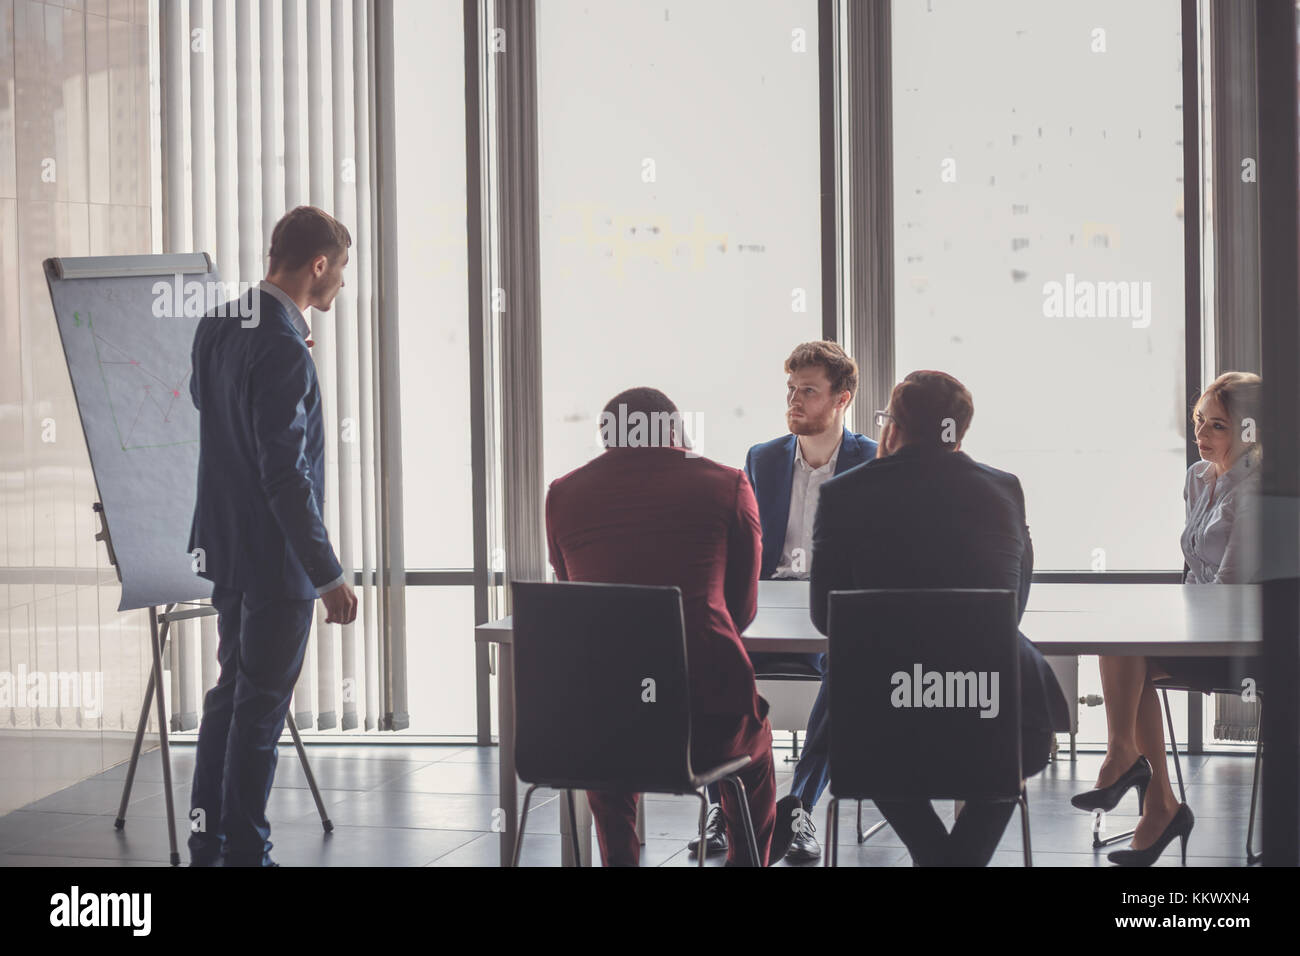 Business plan explained on flipchart by CEO to colleagues - Stock Image